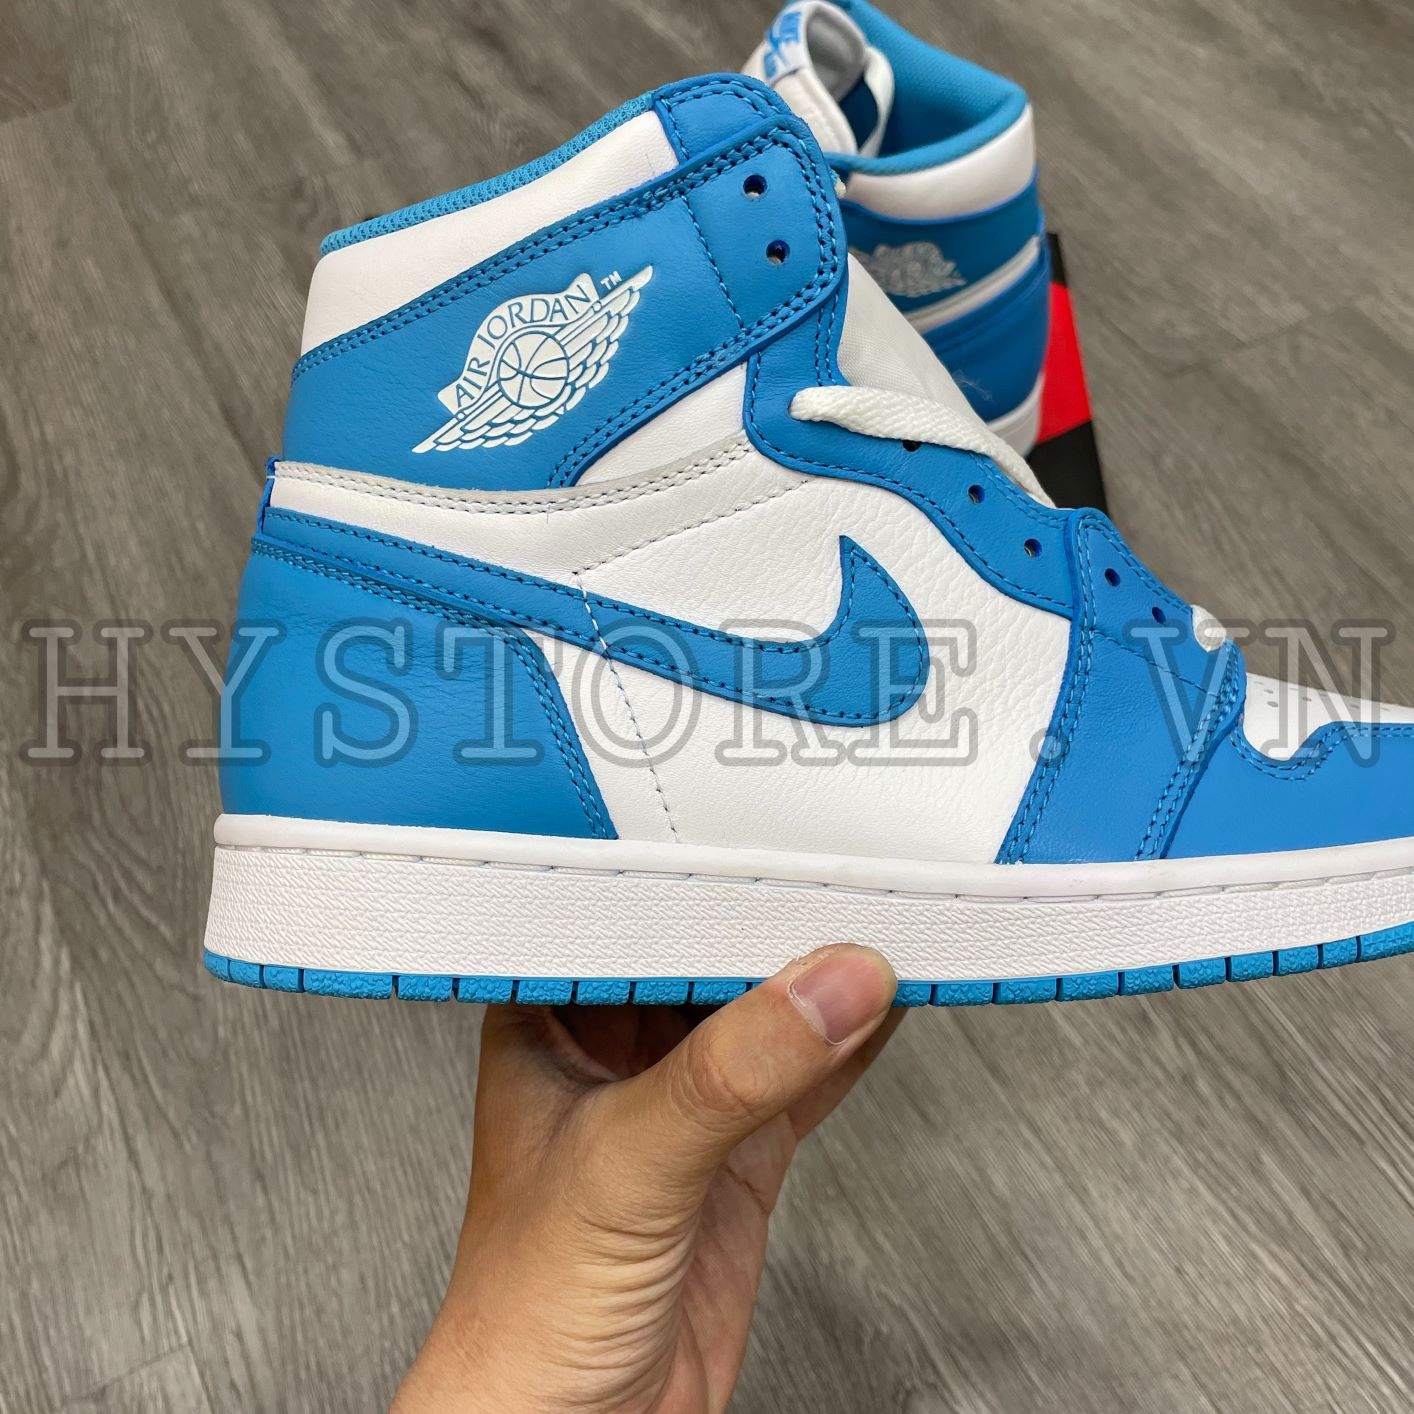 Giày Nike Air Jordan1 High UNC